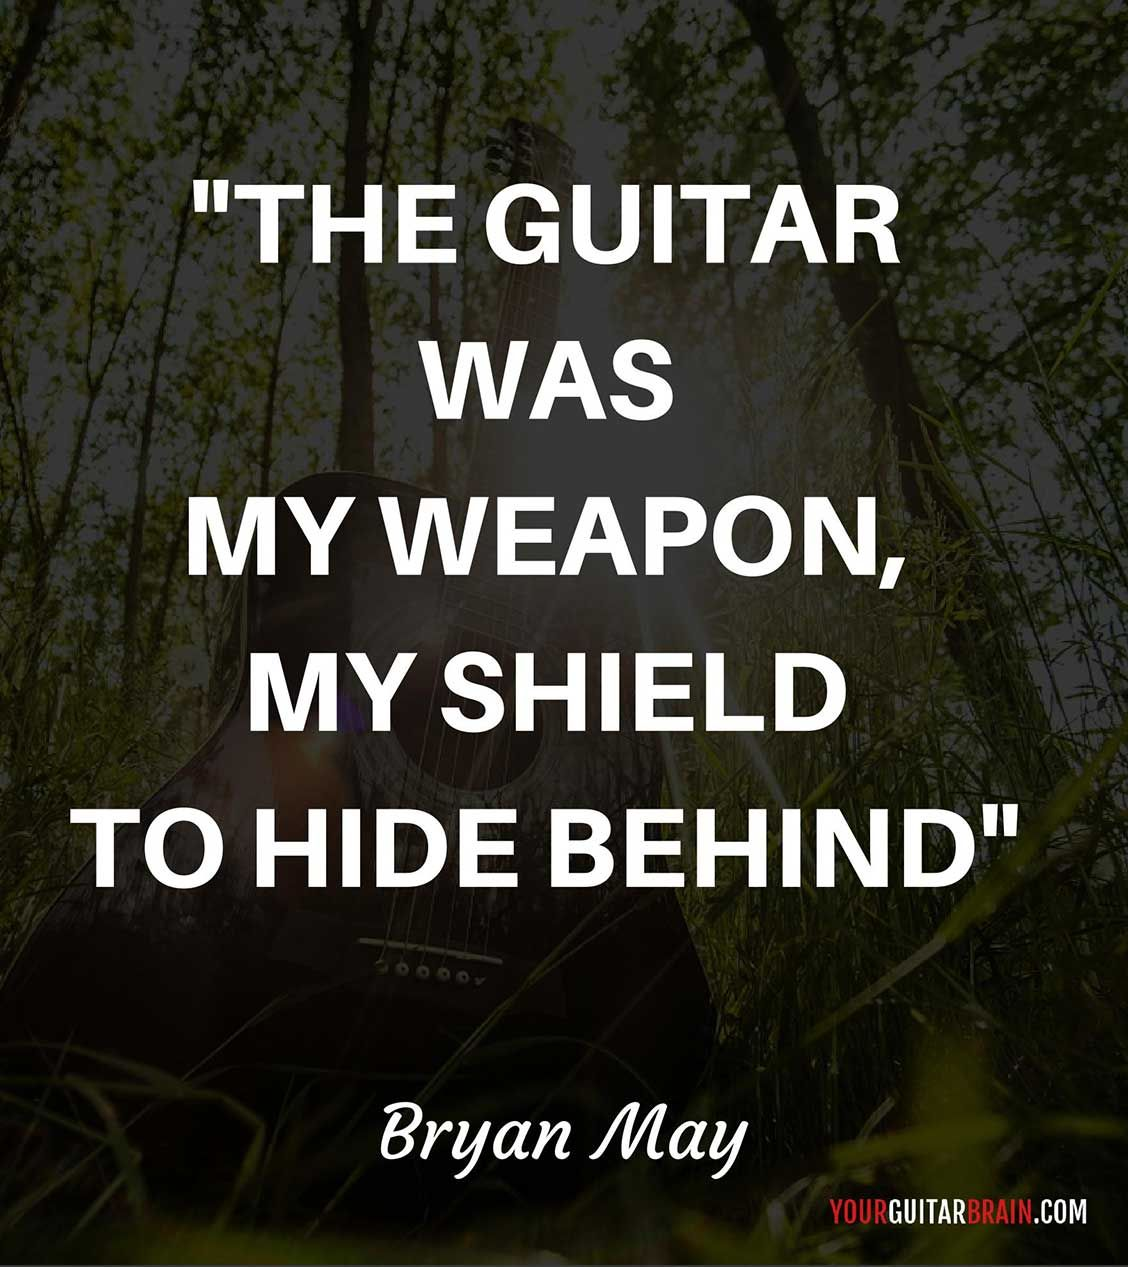 About Guitar From Bryan May